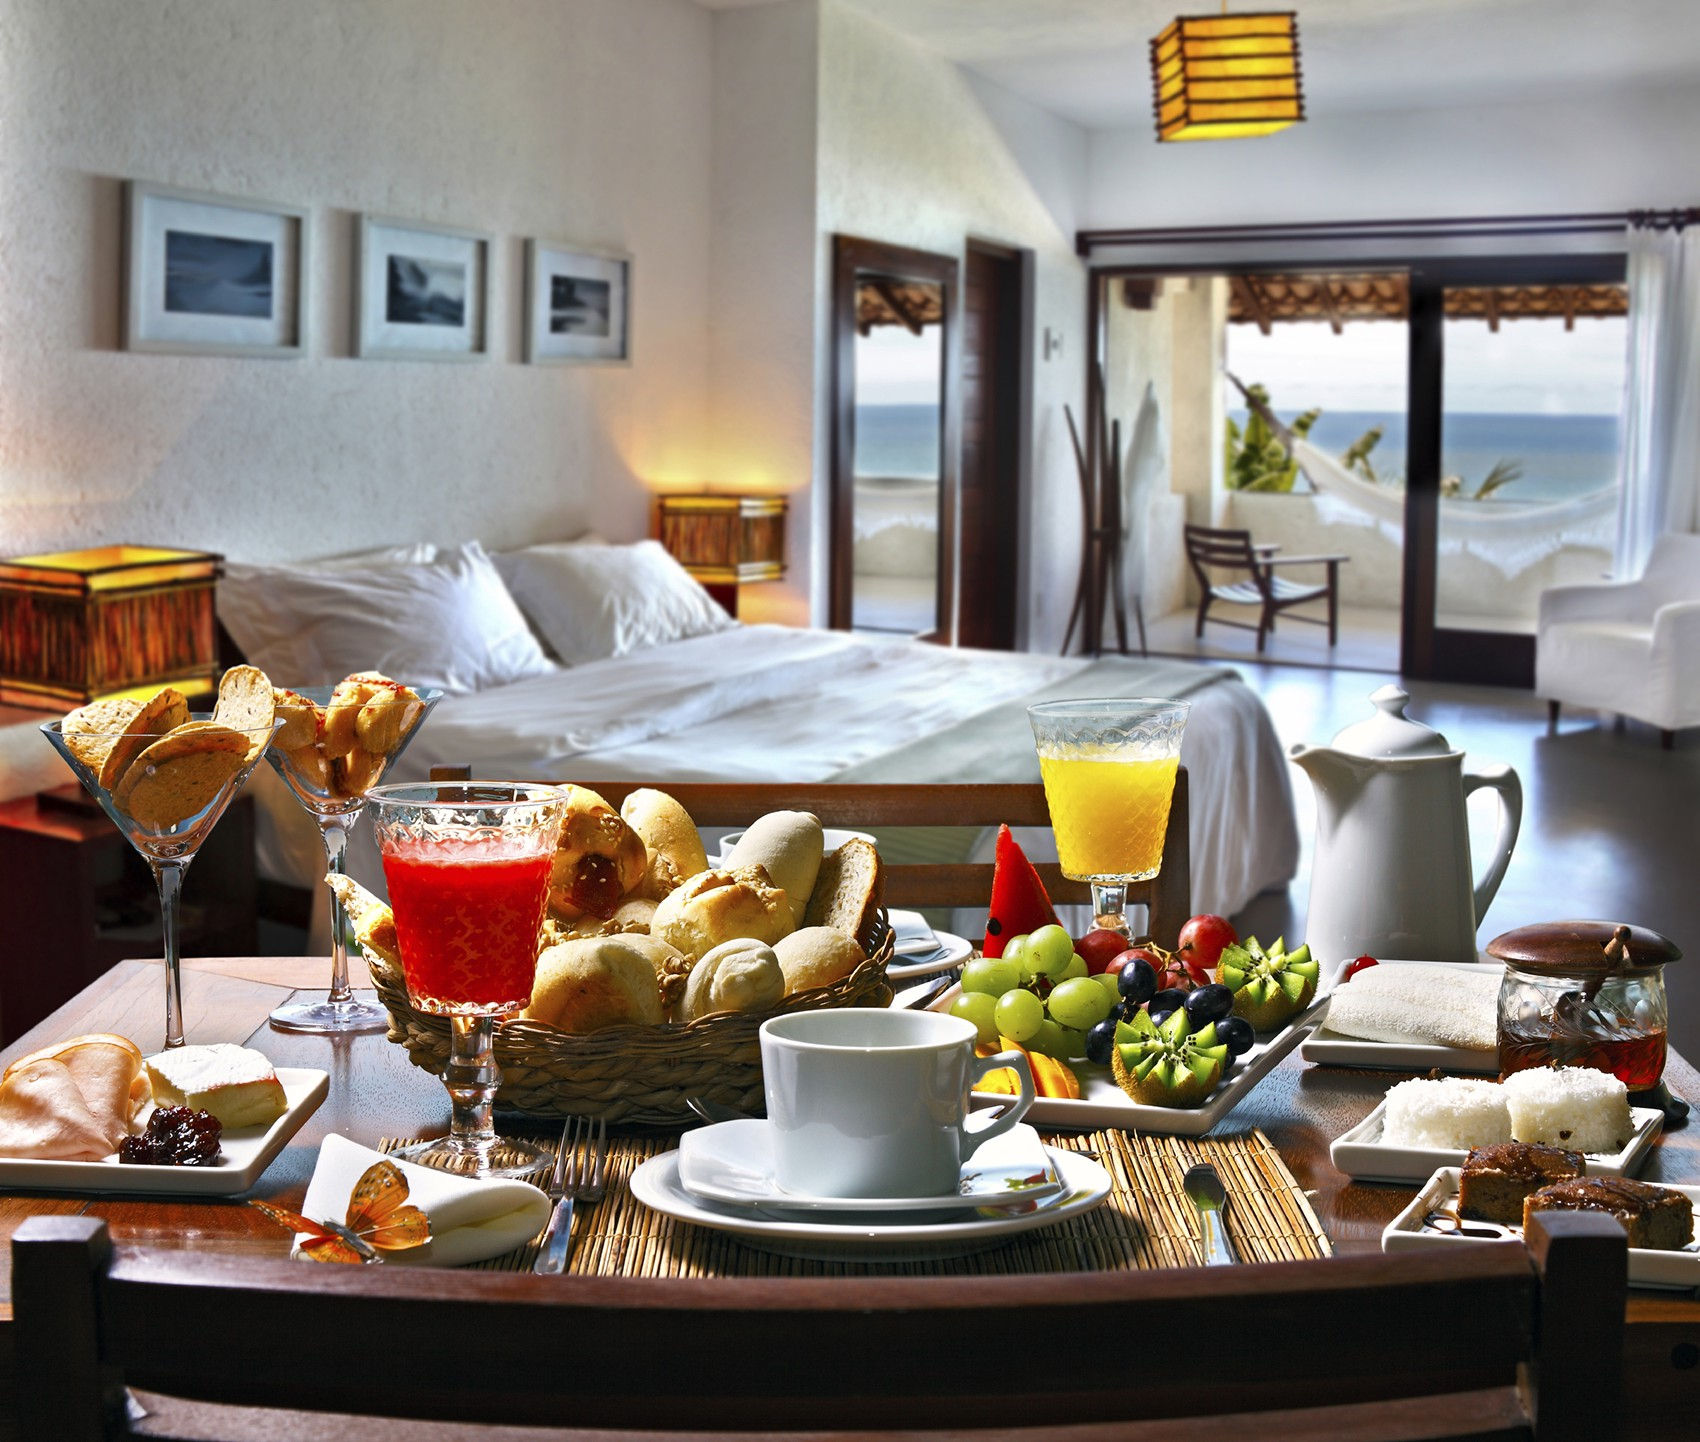 How To Propel Your Bed And Breakfast Business   by BNB Paycheck   Medium